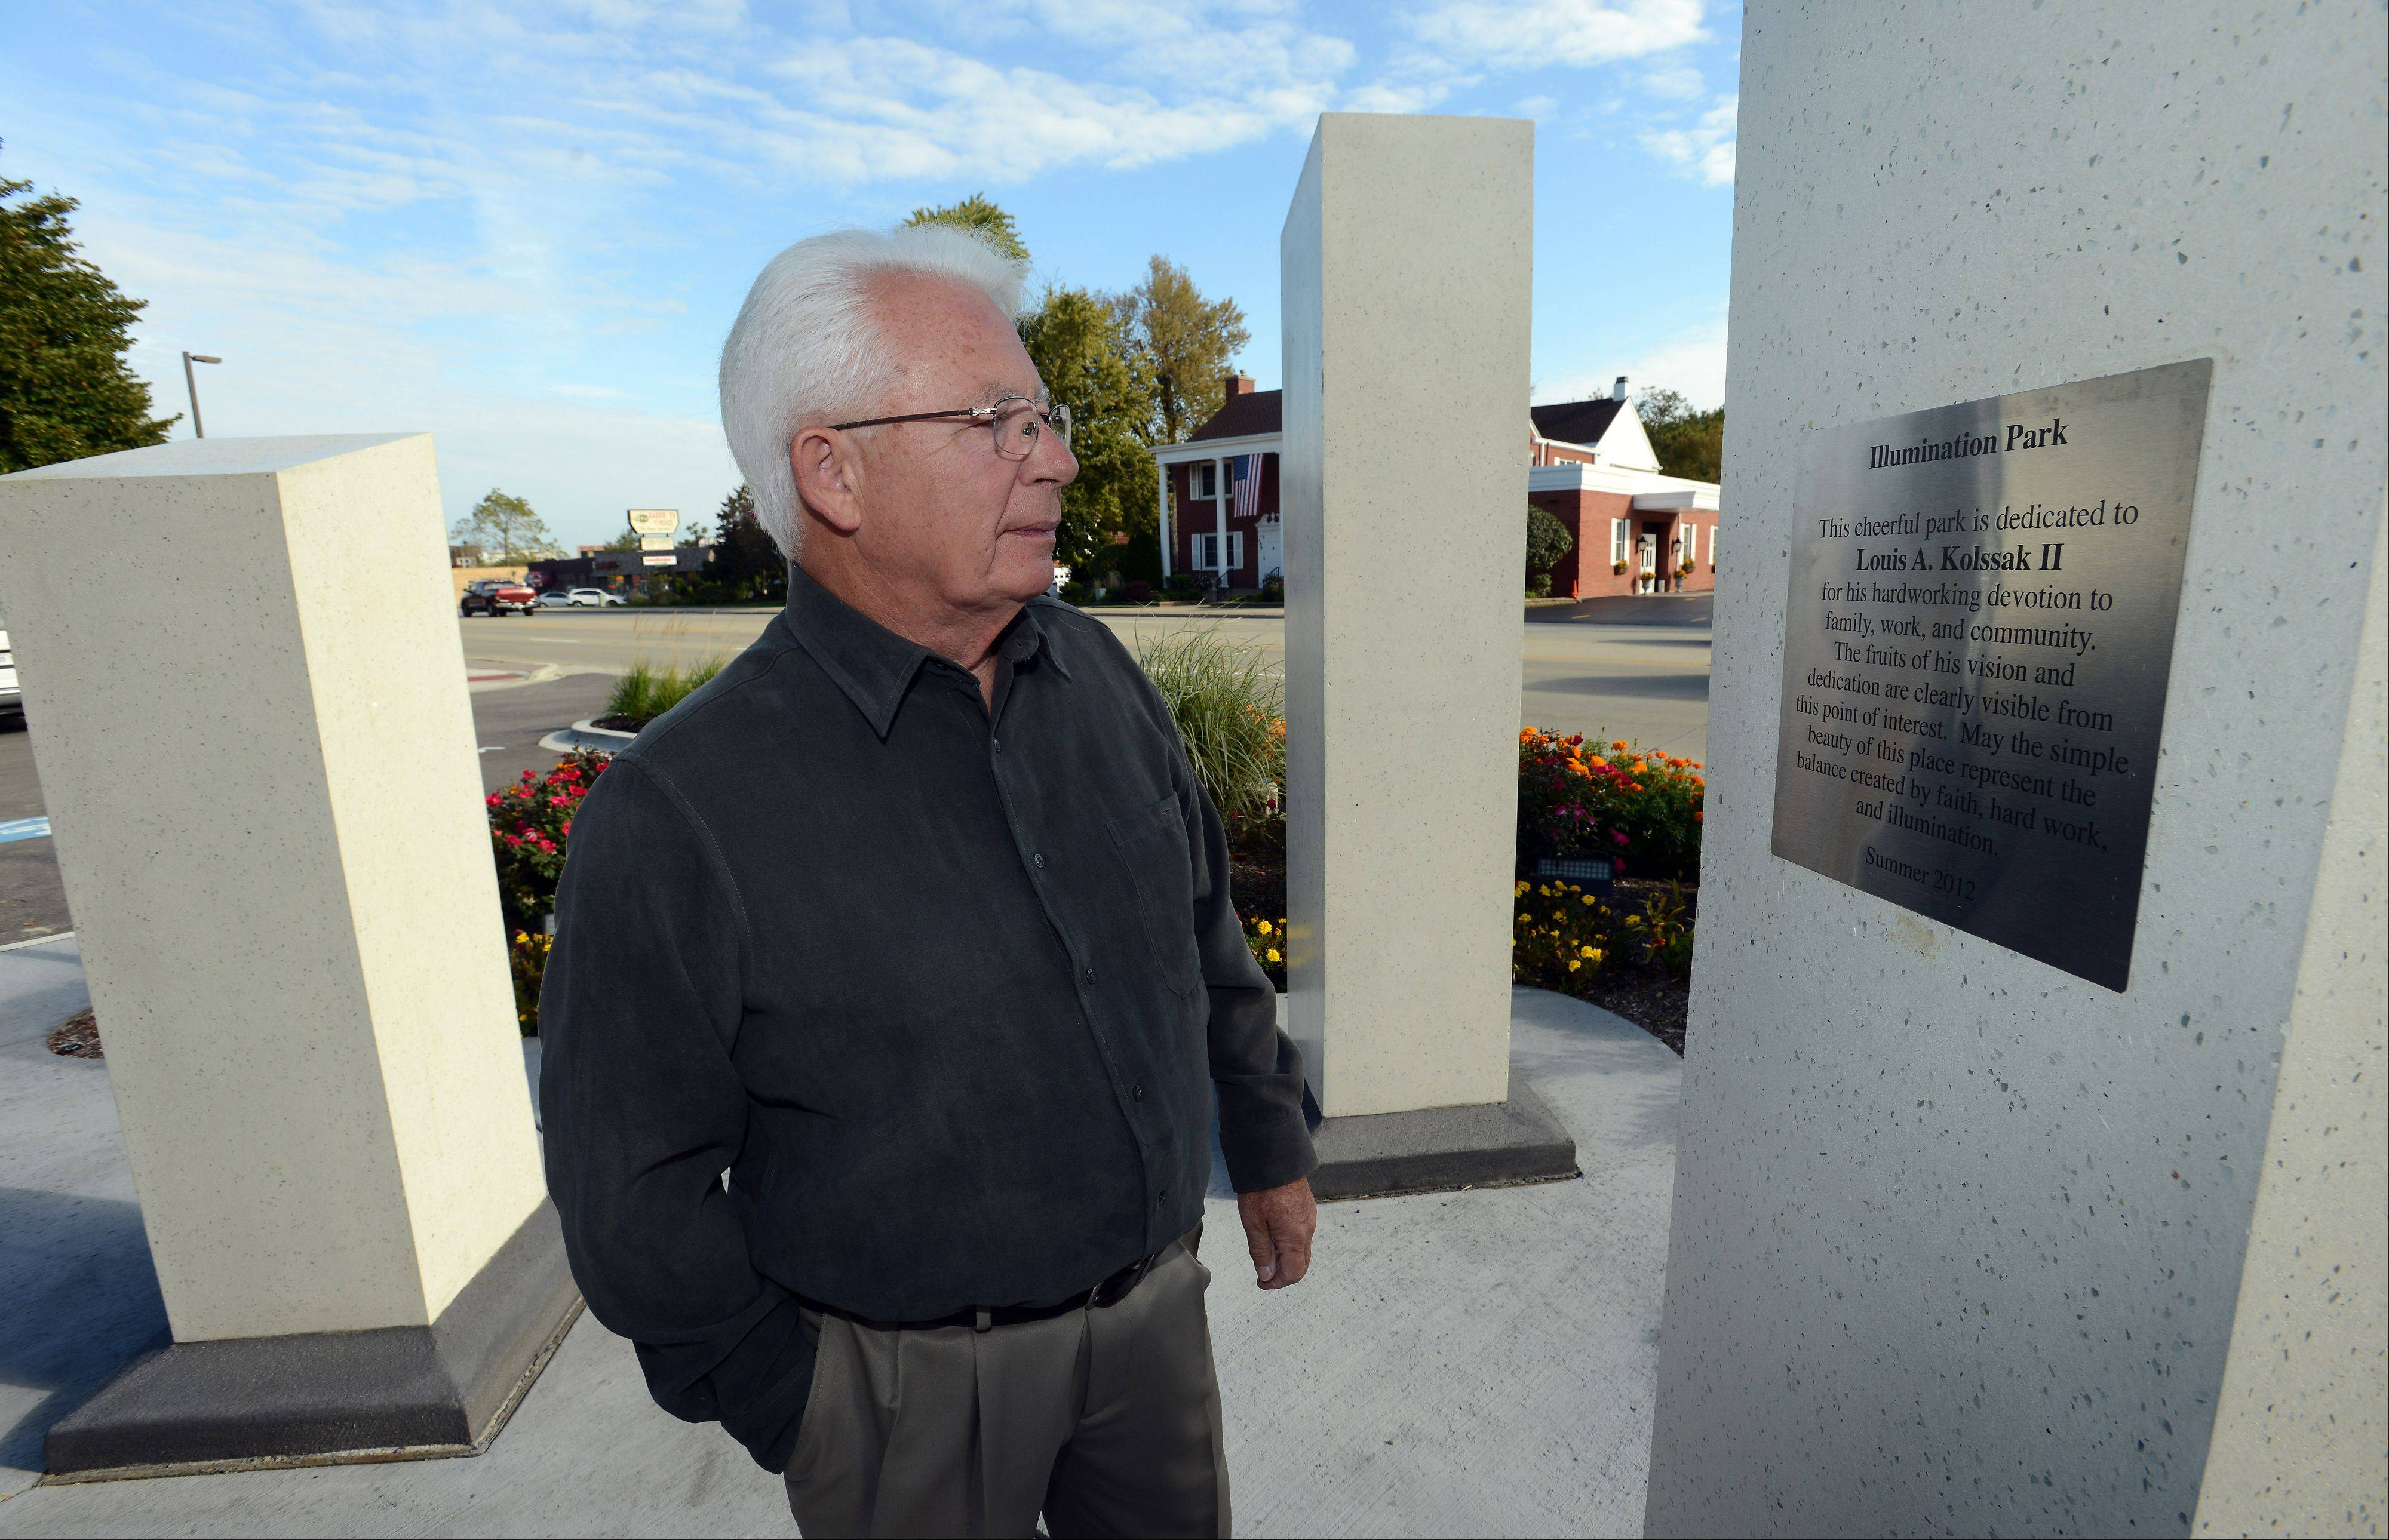 Louis Kolssak praises the park his son built, but he was surprised when it was dedicated to him.